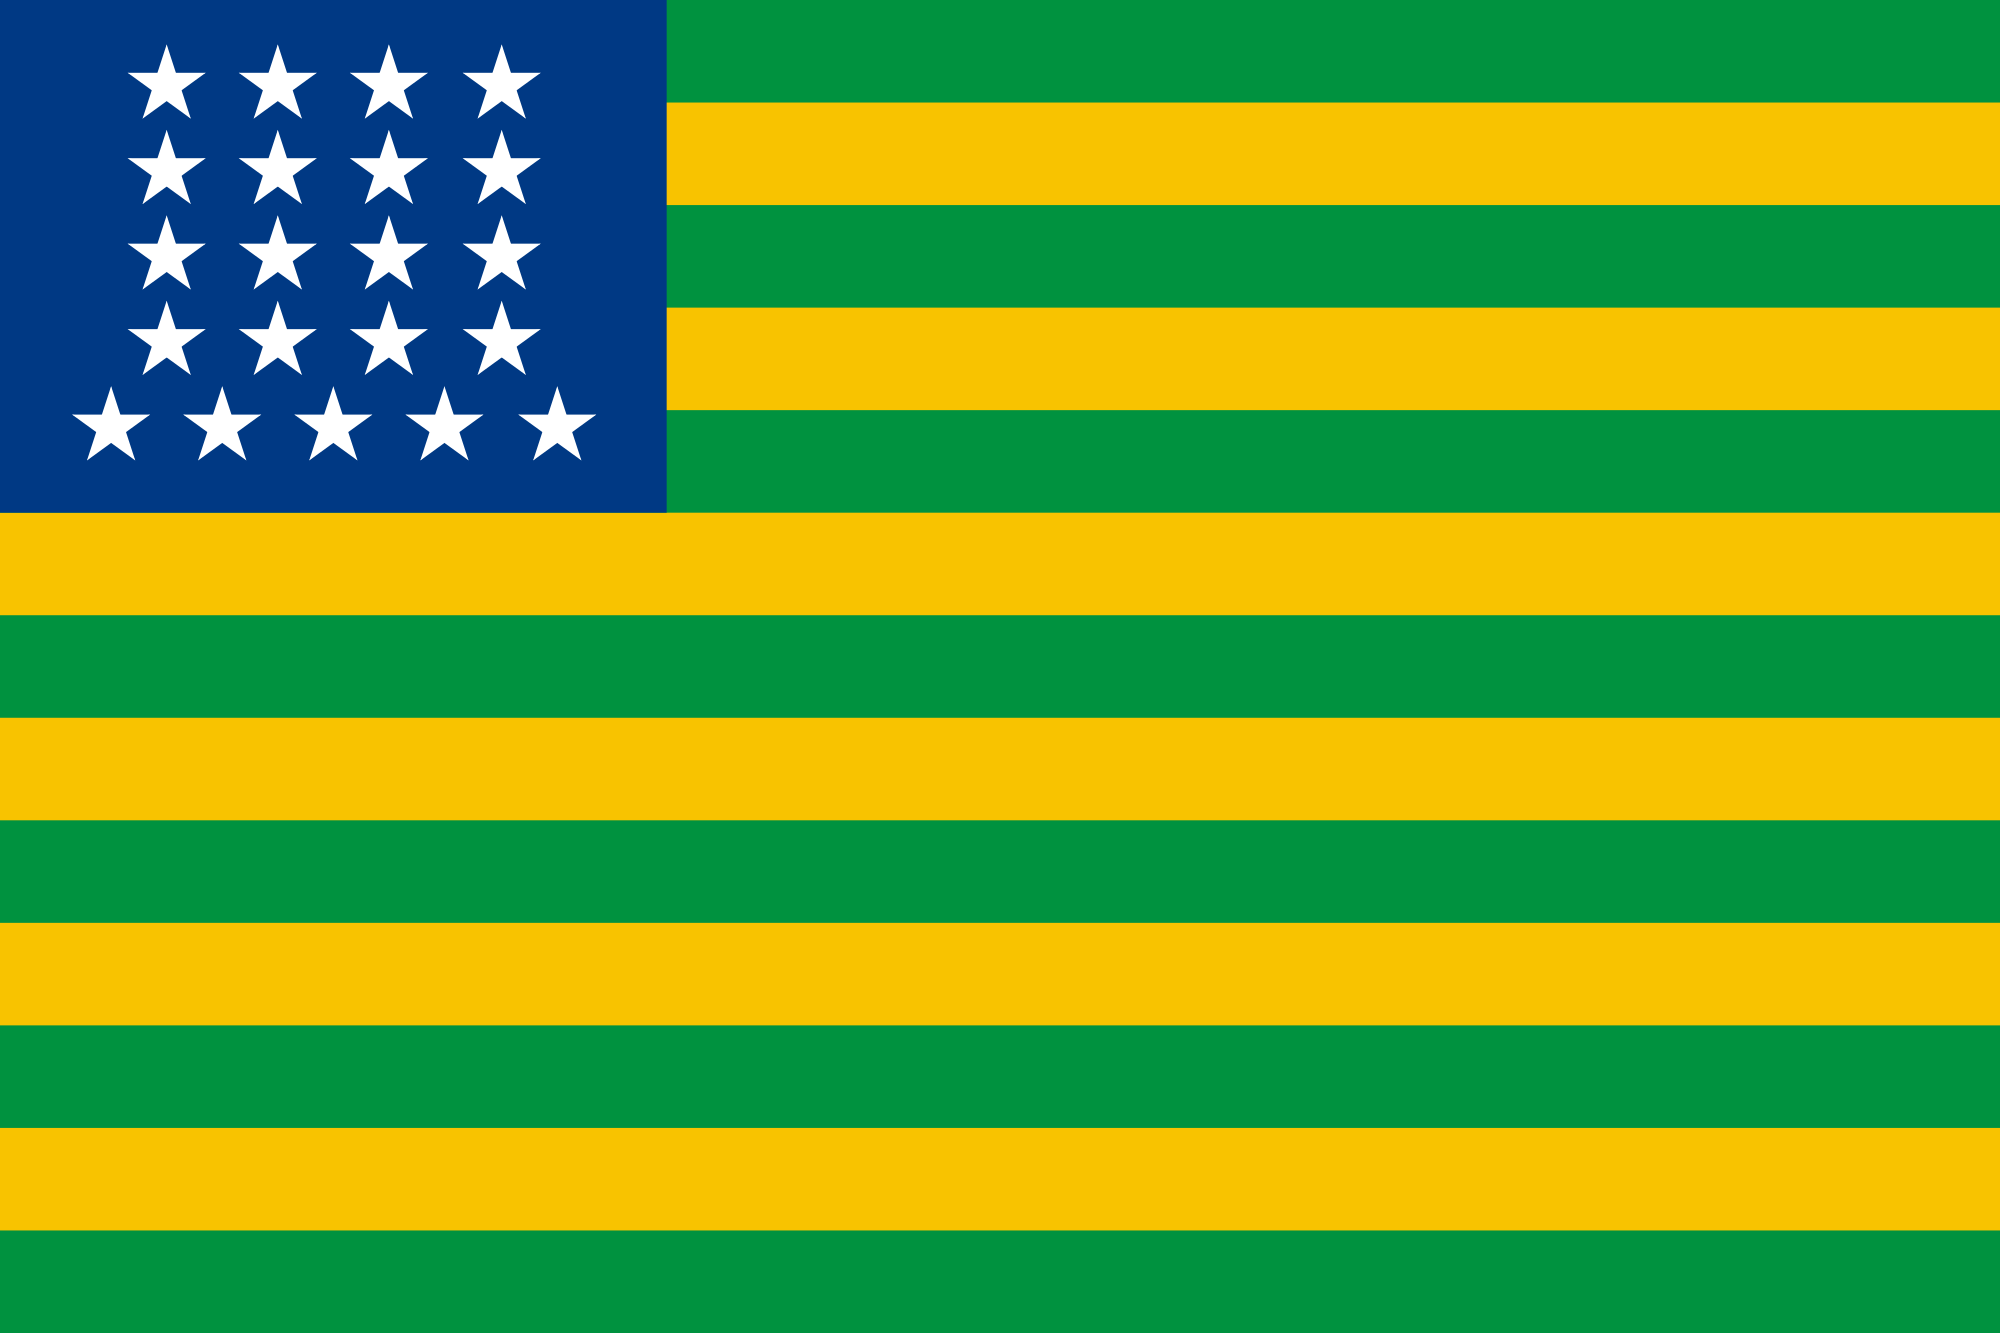 Brazil Flag Wallpapers HD